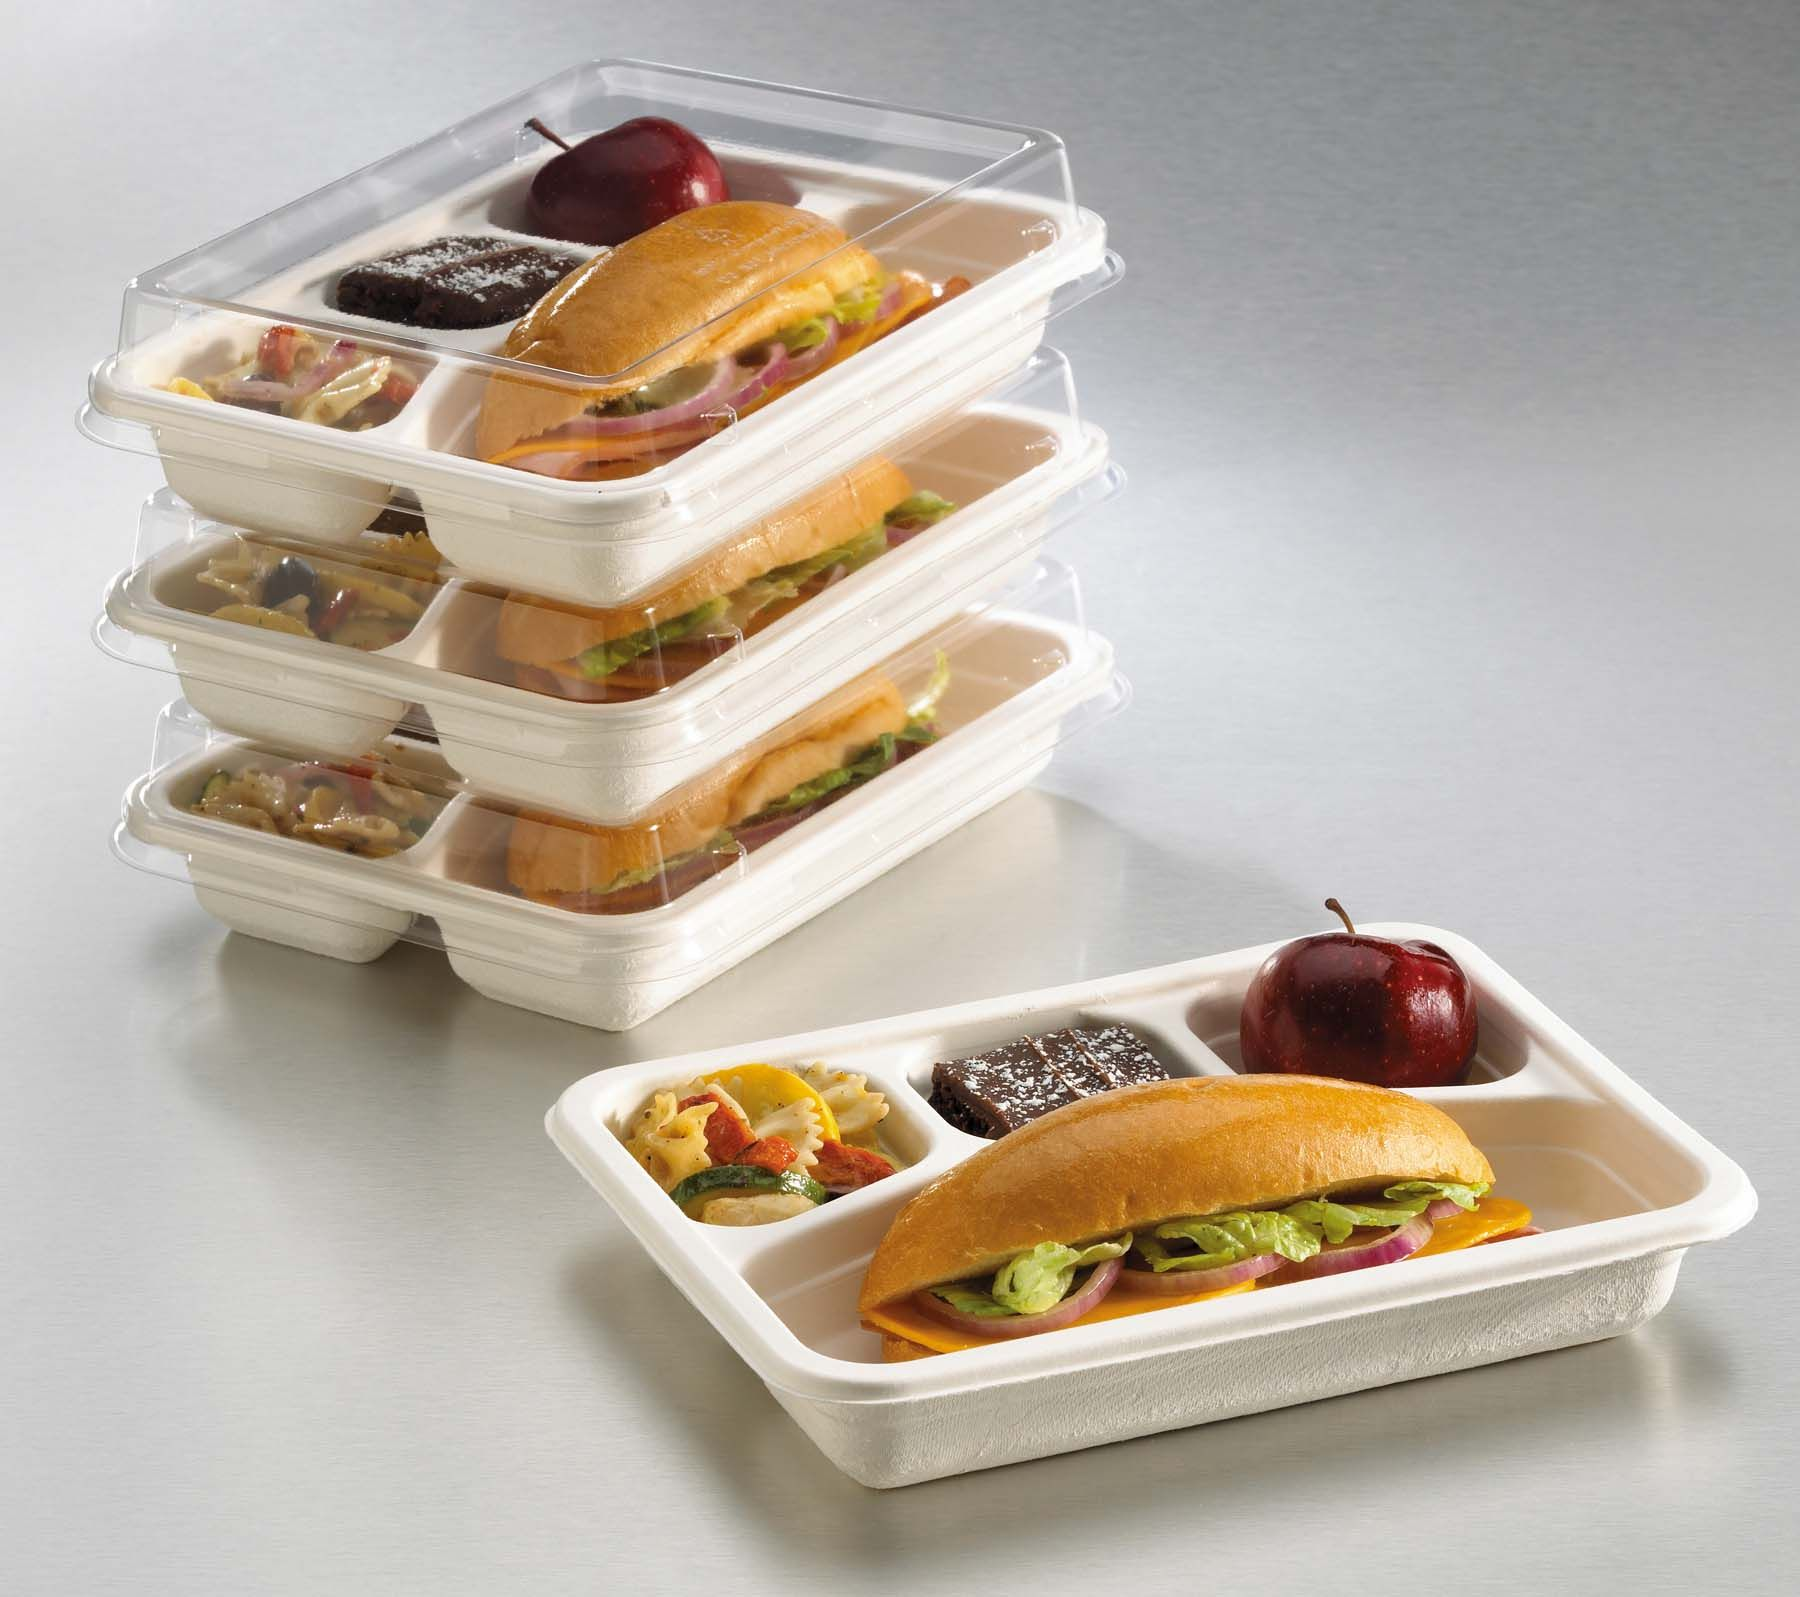 boxed lunch catering essay Catering service: box lunches and large group orders when it comes to lunchtime catering, we at green mill catering understand that you don't always have time or space to run a full-scale buffet whether it's a big business gathering or a community event , boxed lunches are a quick and convenient way to serve your guests our delicious food .